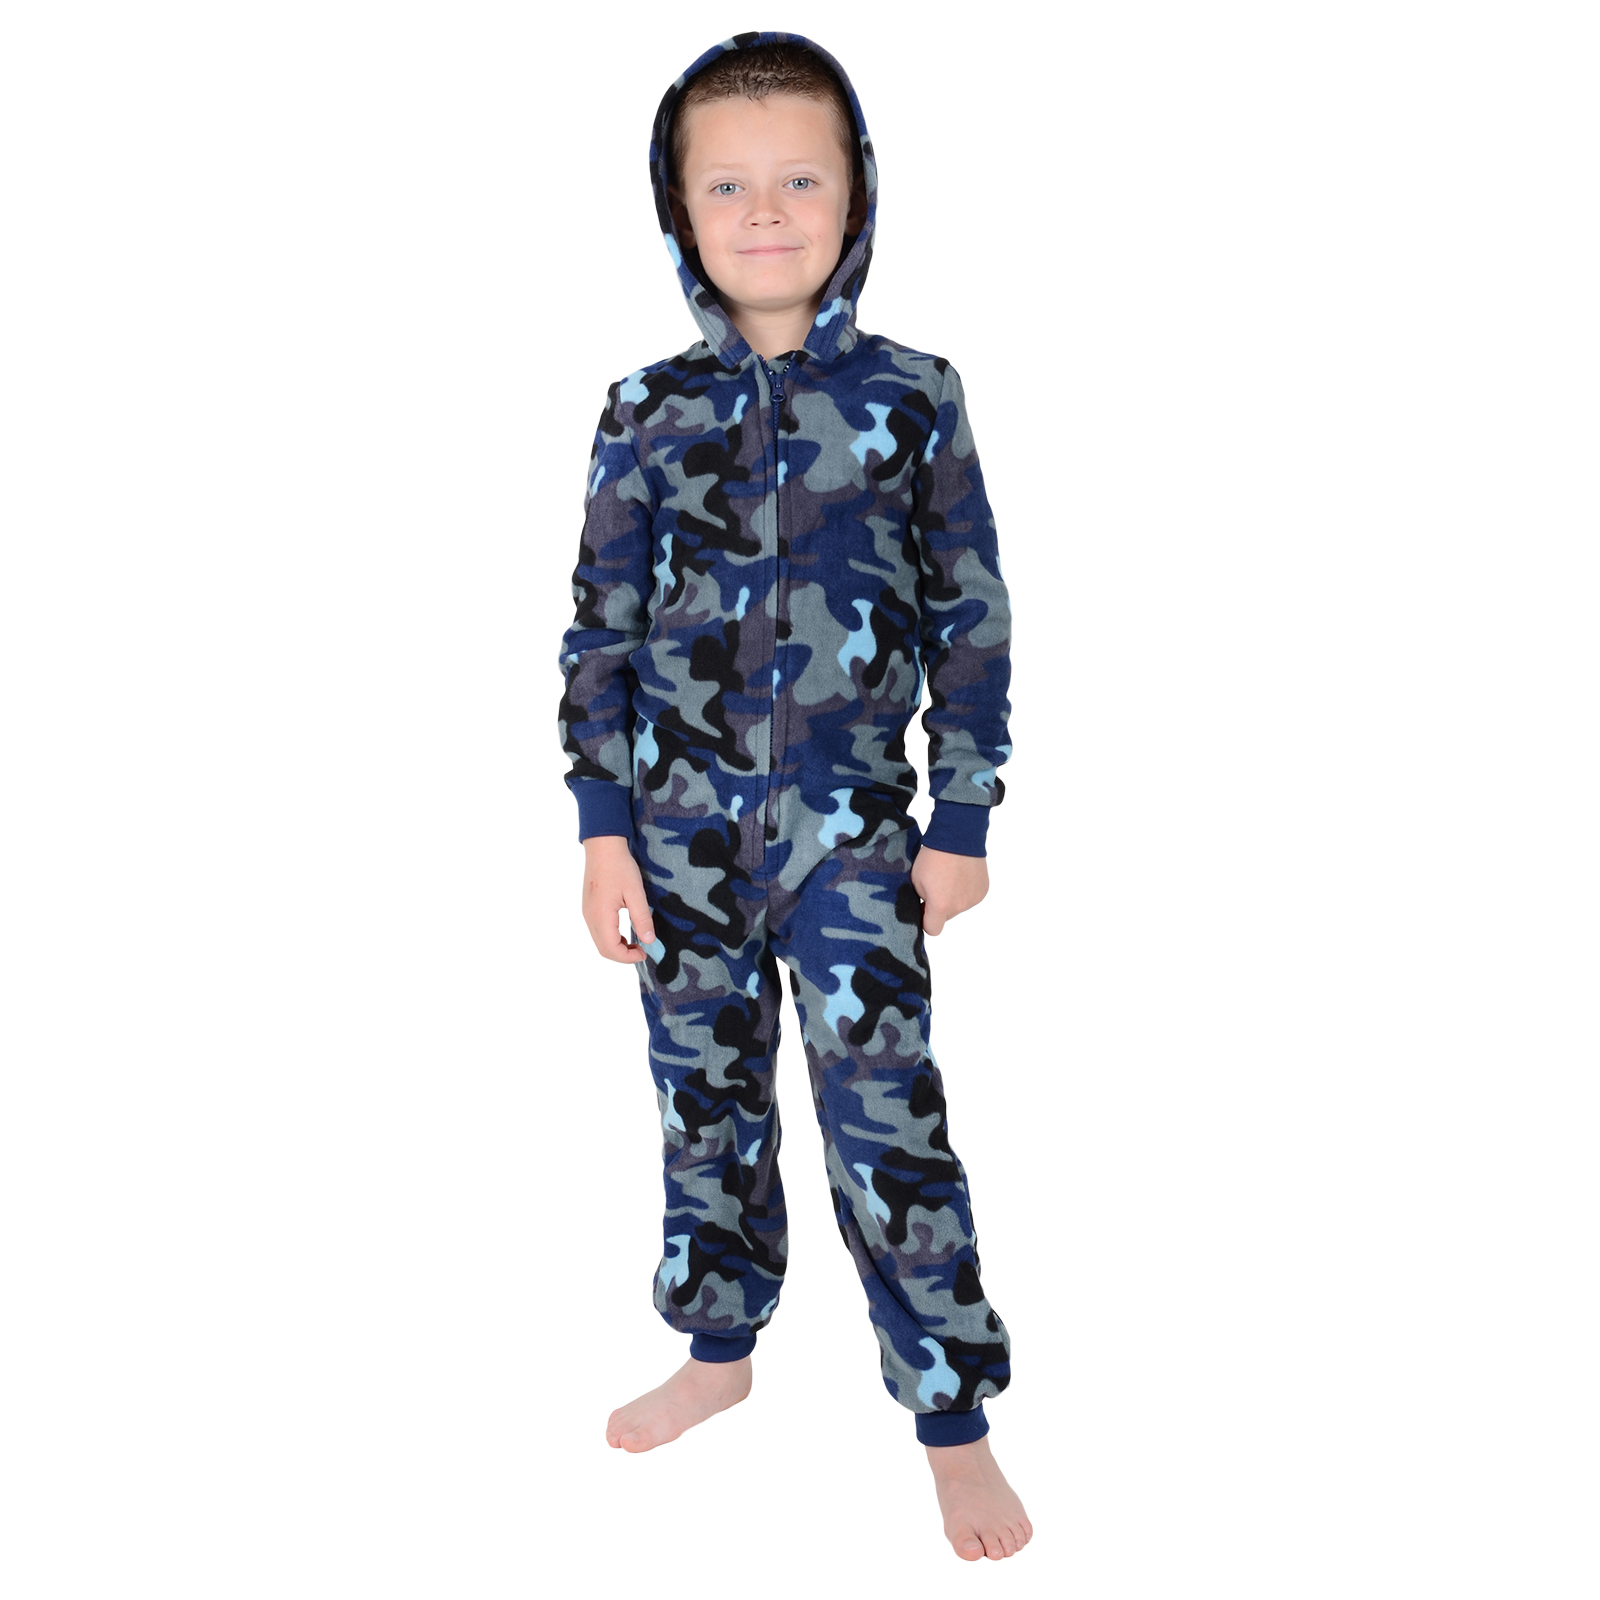 Mothercare's range of boys nightwear & underwear are super cool, including skinny fit pirate pyjamas & more. Find the full range of boys underwear & nightwear at Mothercare.